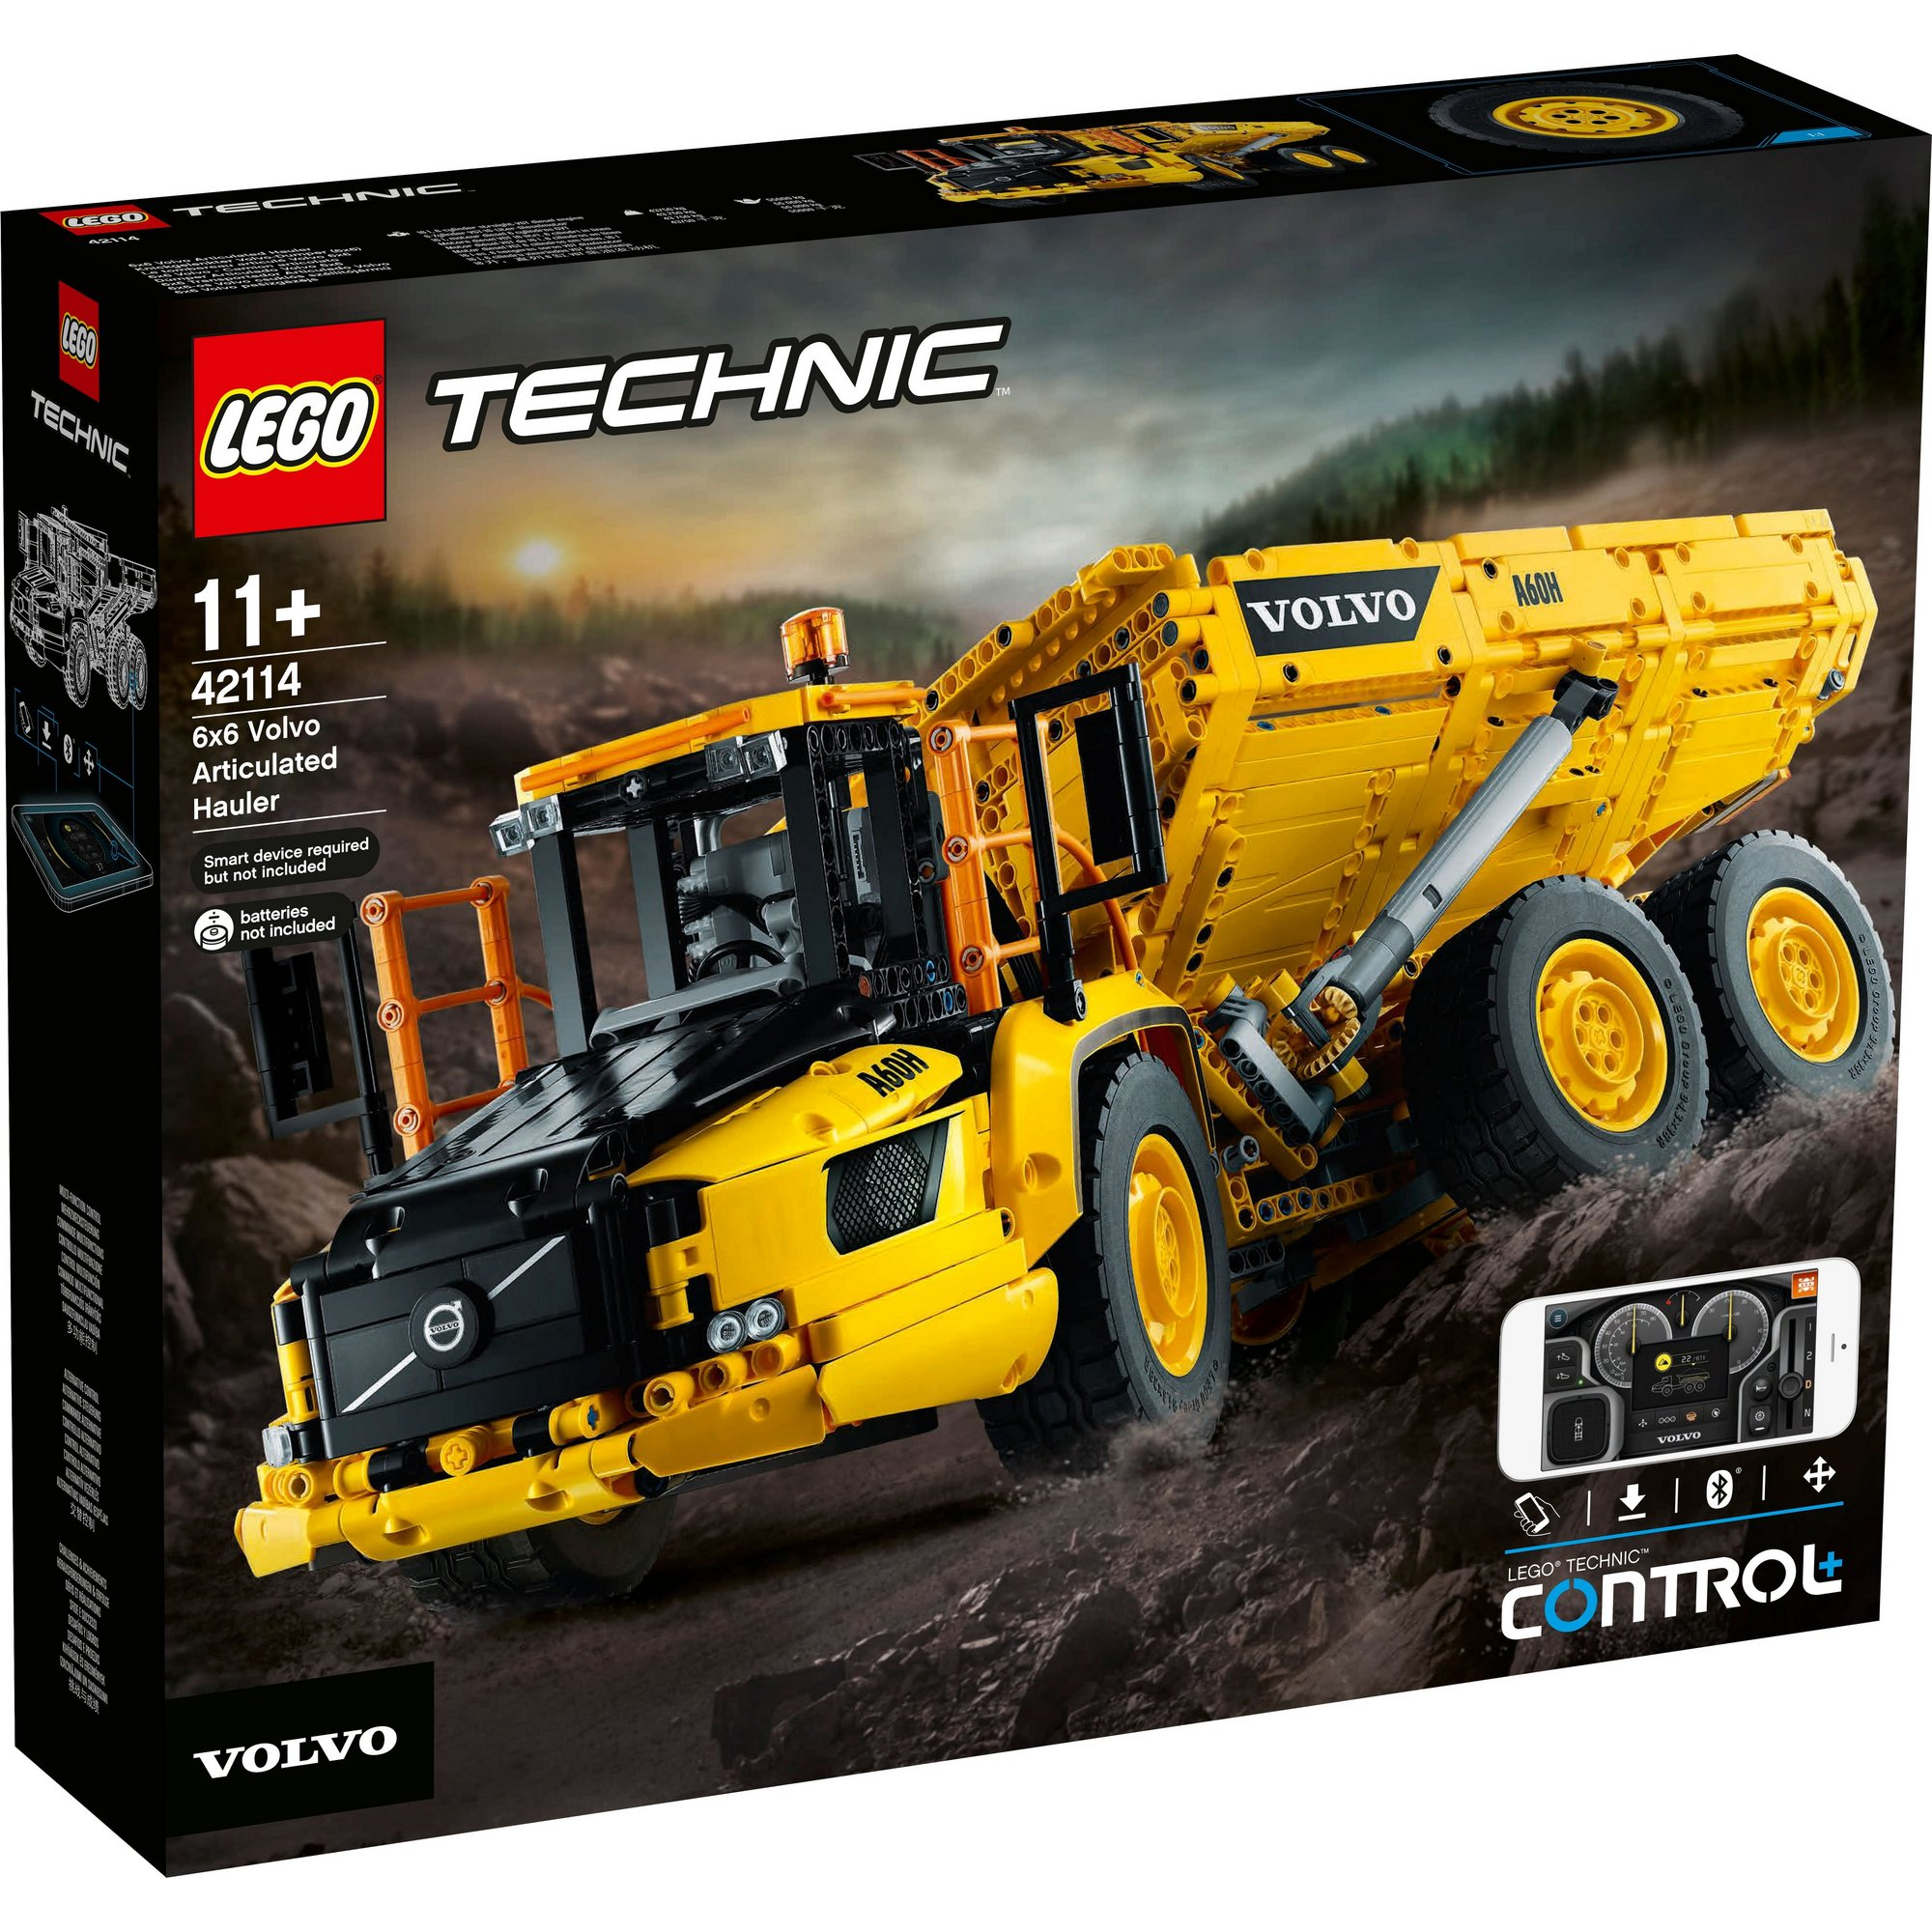 Image of LEGO Technic Power Functions 6x6 Volvo Articulated Hauler